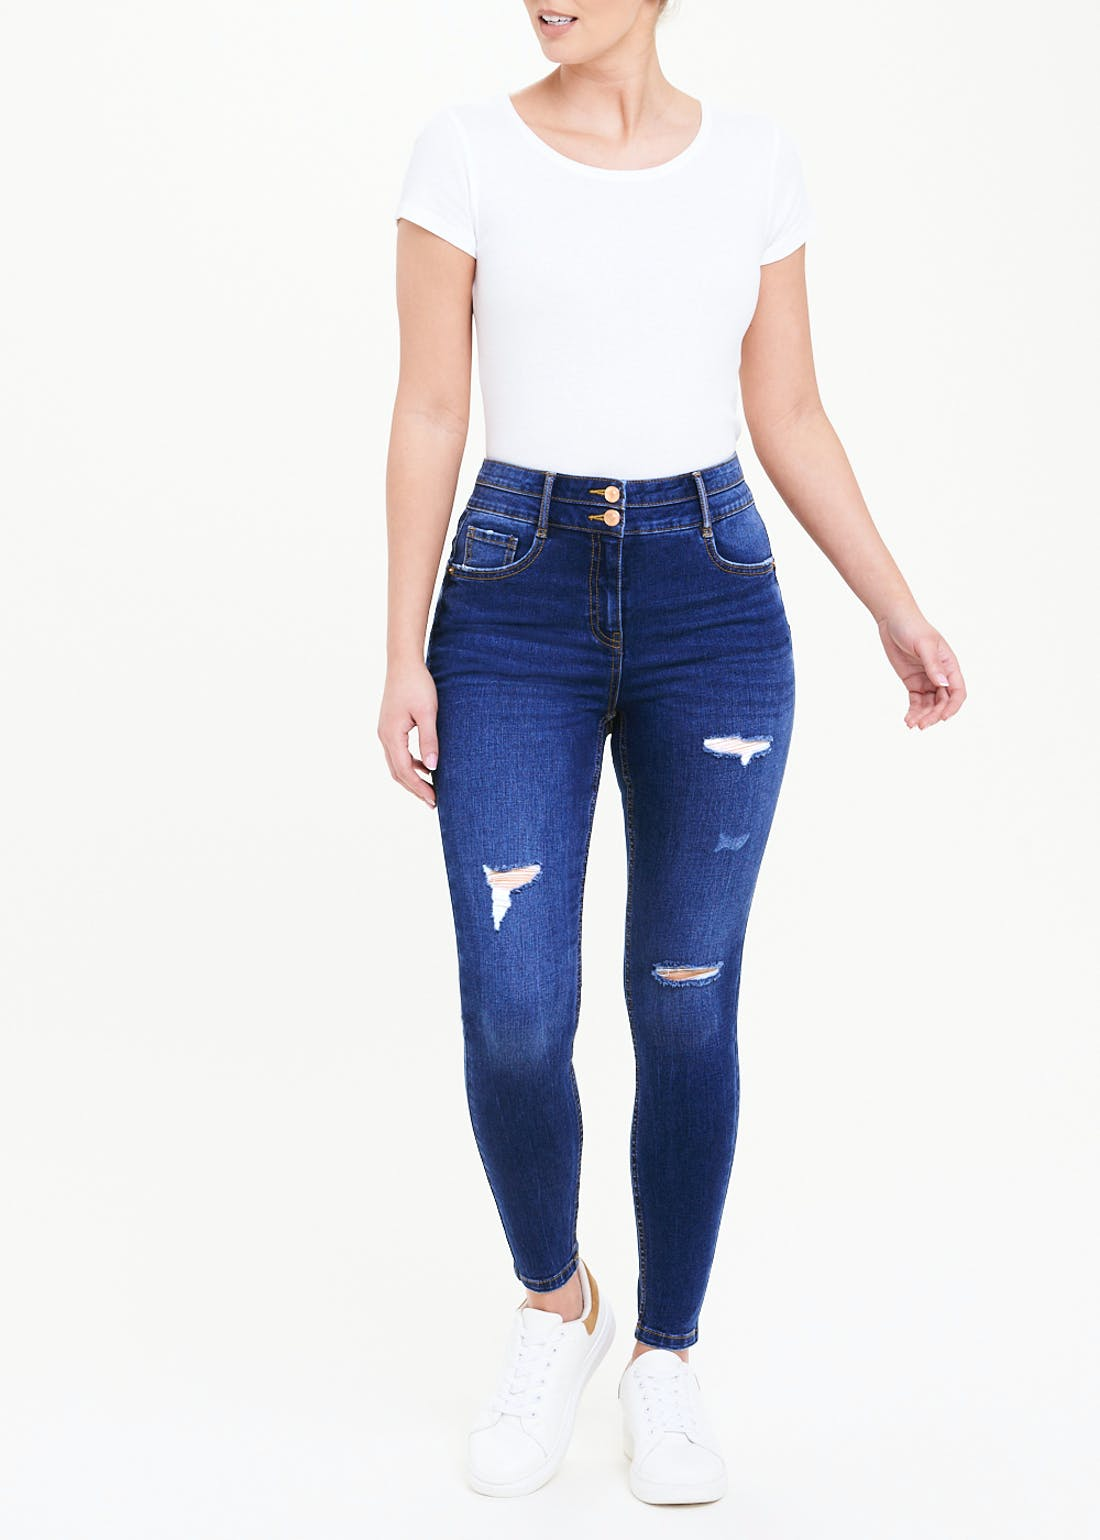 April Push Up Ripped Skinny Jeans